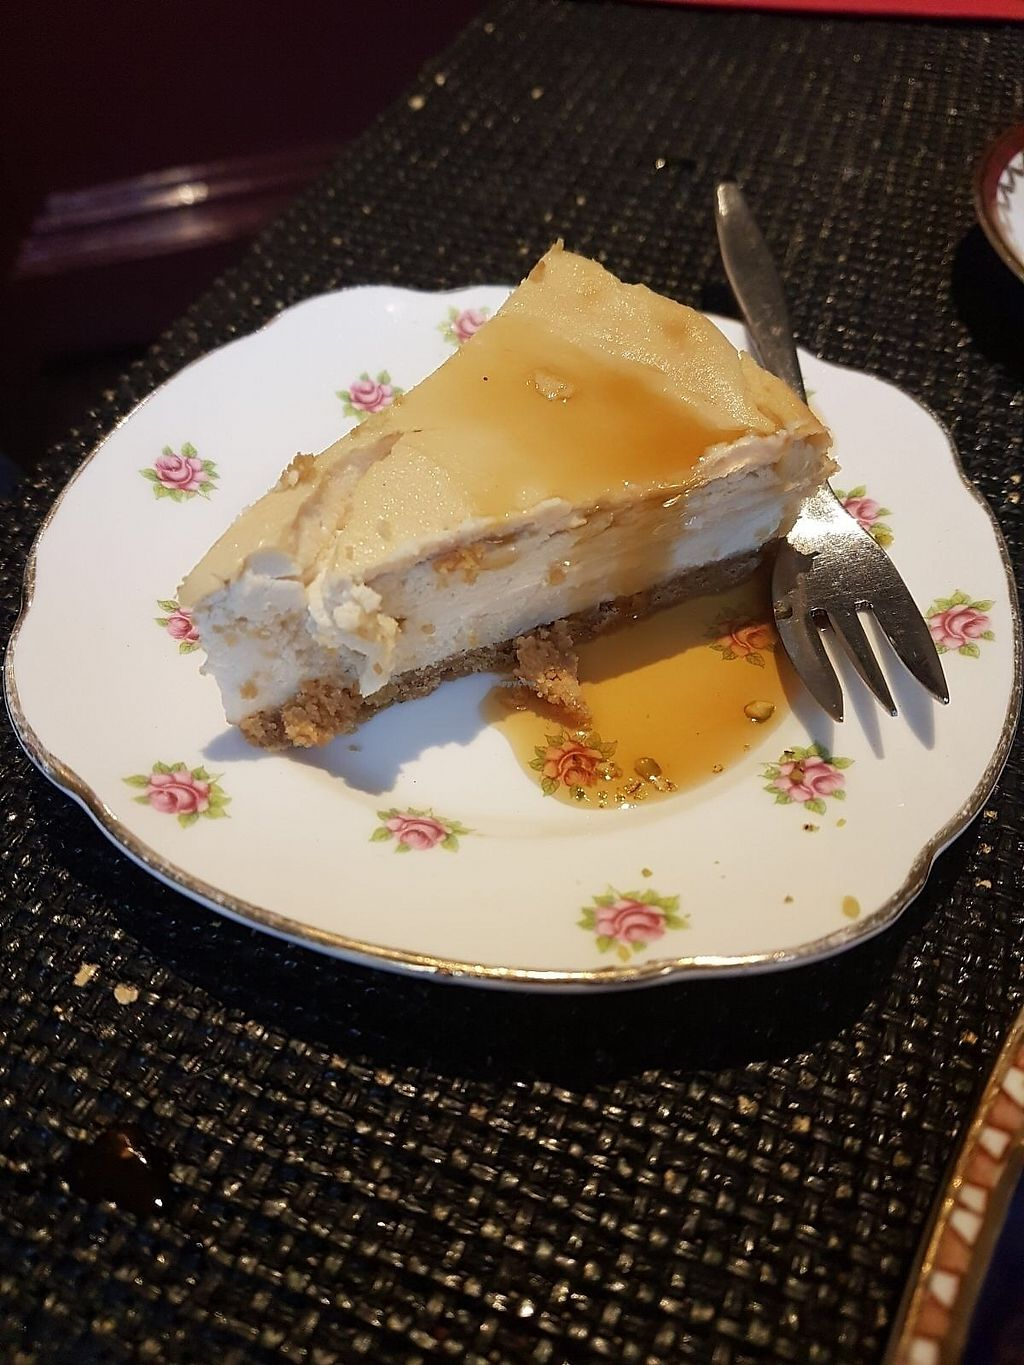 "Photo of The Kind Cake Co  by <a href=""/members/profile/katysarah"">katysarah</a> <br/>New York cheesecake with maple syrup  <br/> October 21, 2017  - <a href='/contact/abuse/image/65059/317436'>Report</a>"